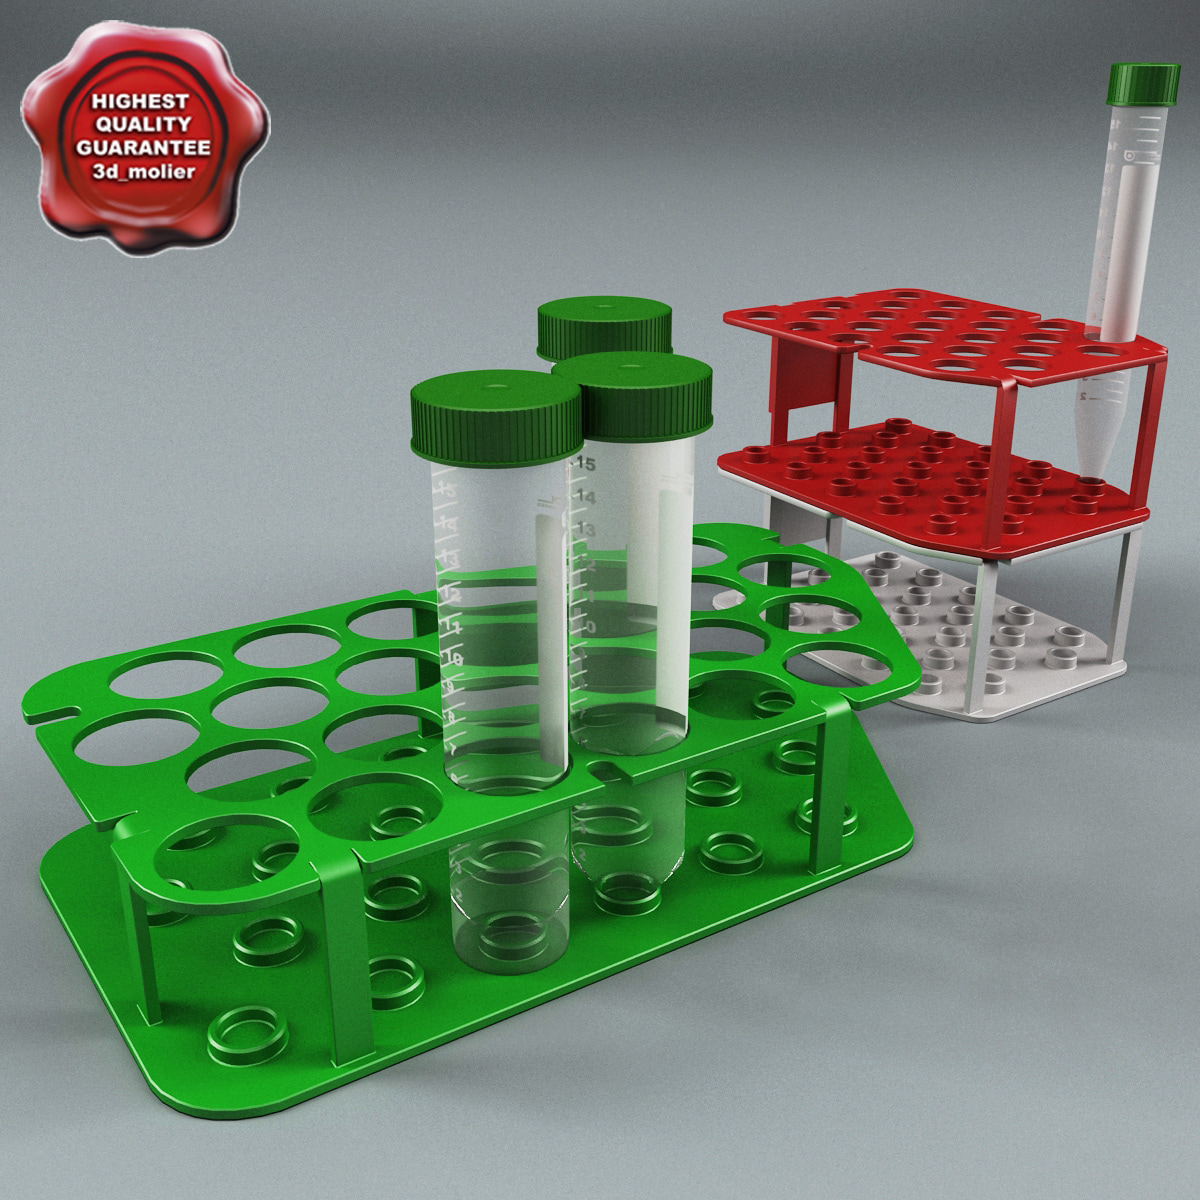 Plastic_Vials_and_Racks_Collection_00.jpg